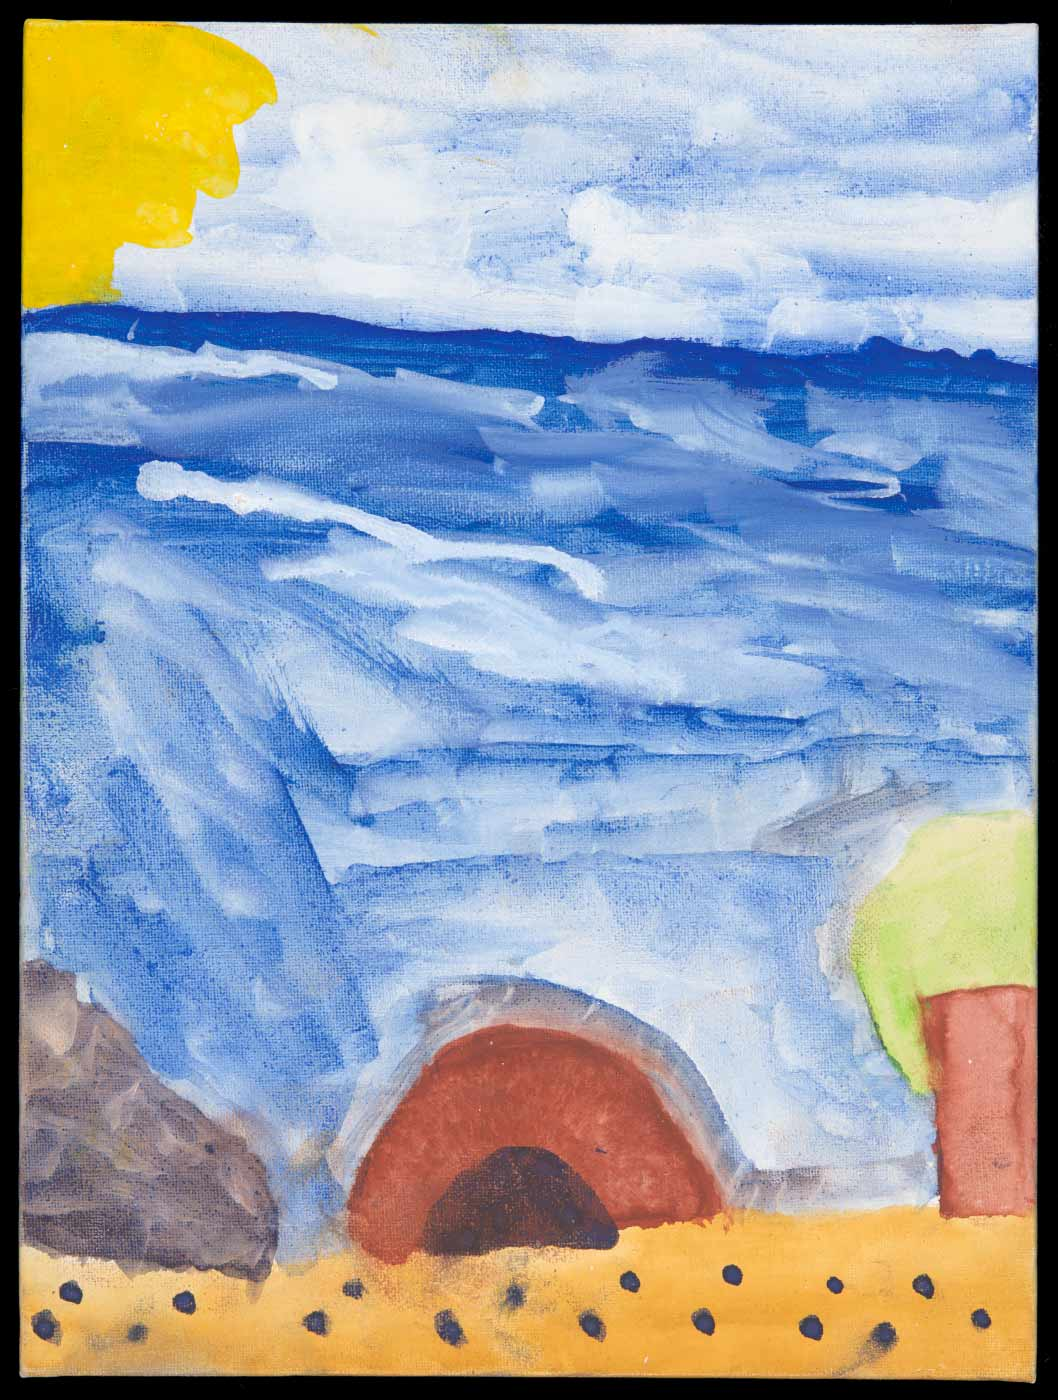 Painting on cotton canvas board, depicting a shoreline against a blue ocean a lighter blue sky and a yellow sun in the top left corner. - click to view larger image